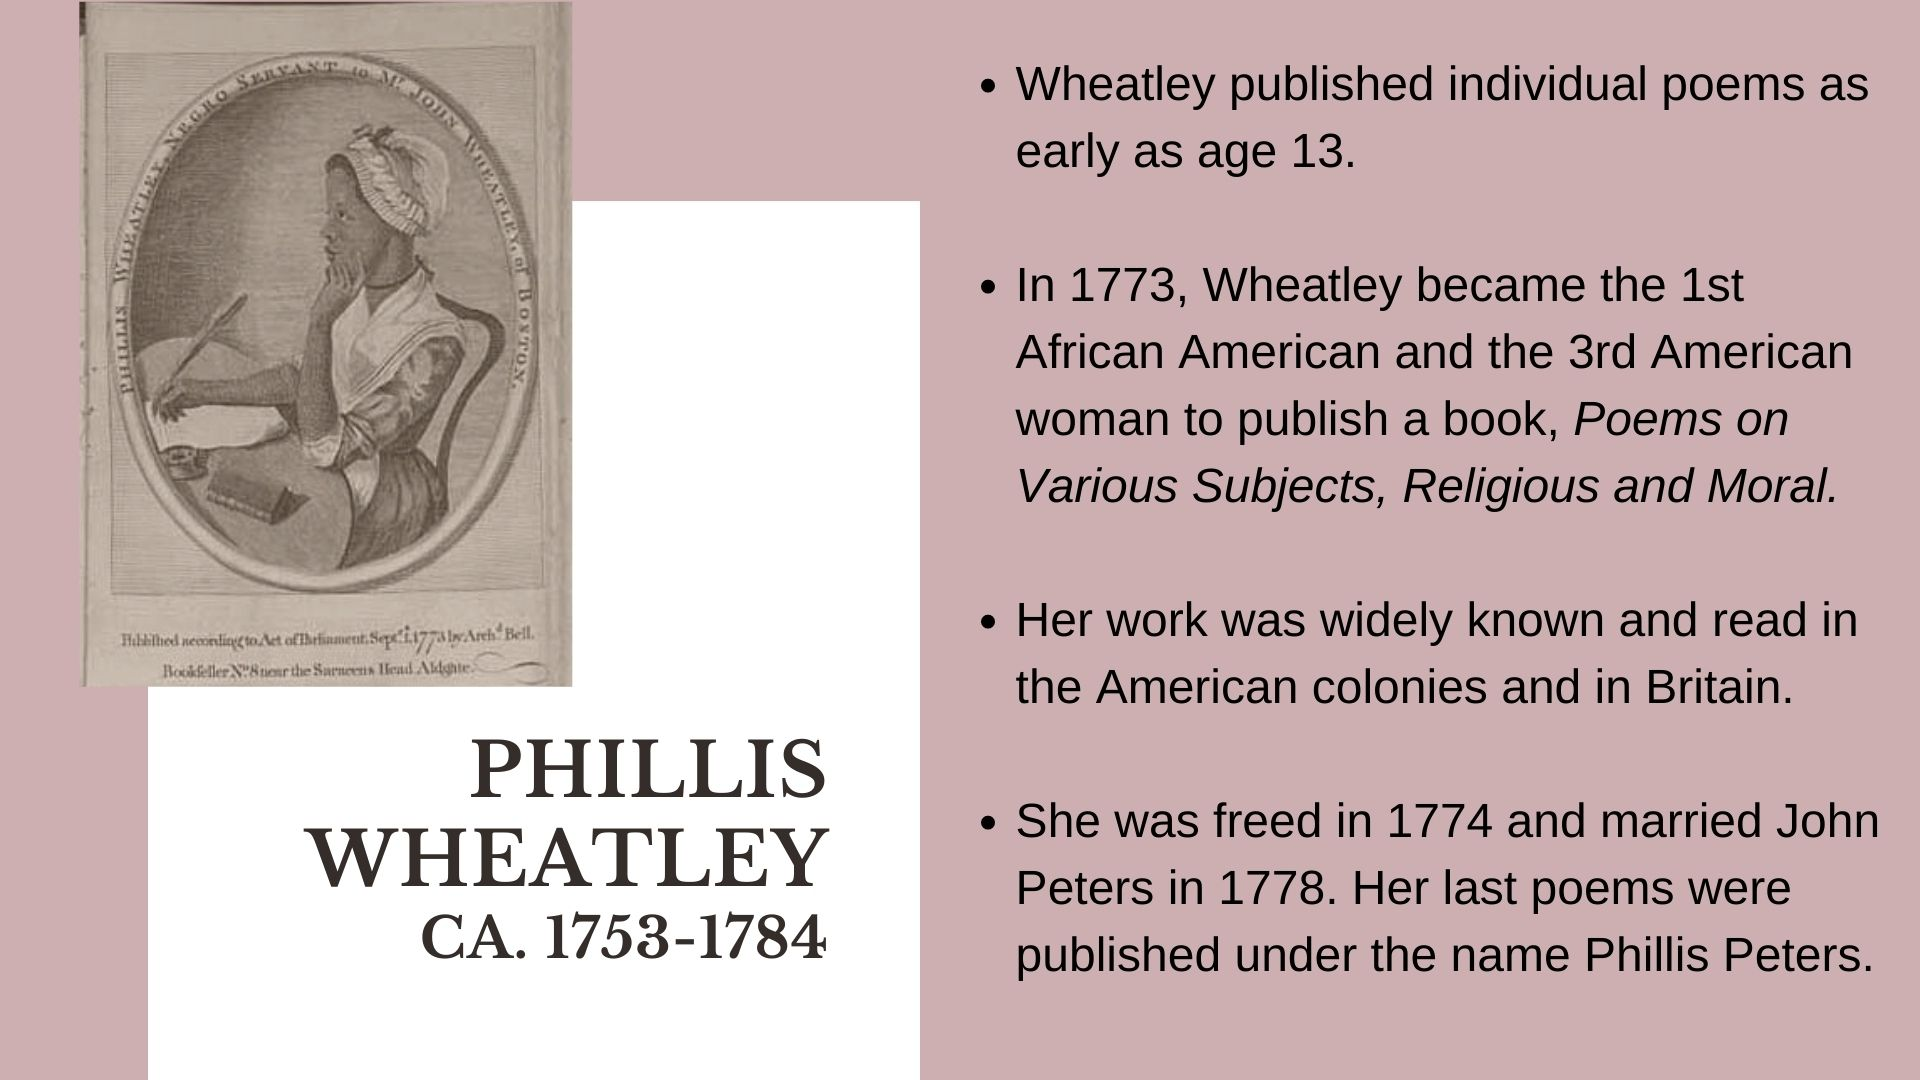 phillis wheatley ca. 1753-1784 Wheatley published individual poems as early as age 13.    In 1773, Wheatley became the 1st African American and the 3rd American woman to publish a book, Poems on Various Subjects, Religious and Moral.  Her work was widely known and read in the American colonies and in Britain.  She was freed in 1774 and married John Peters in 1778. Her last poems were published under the name Phillis Peters.